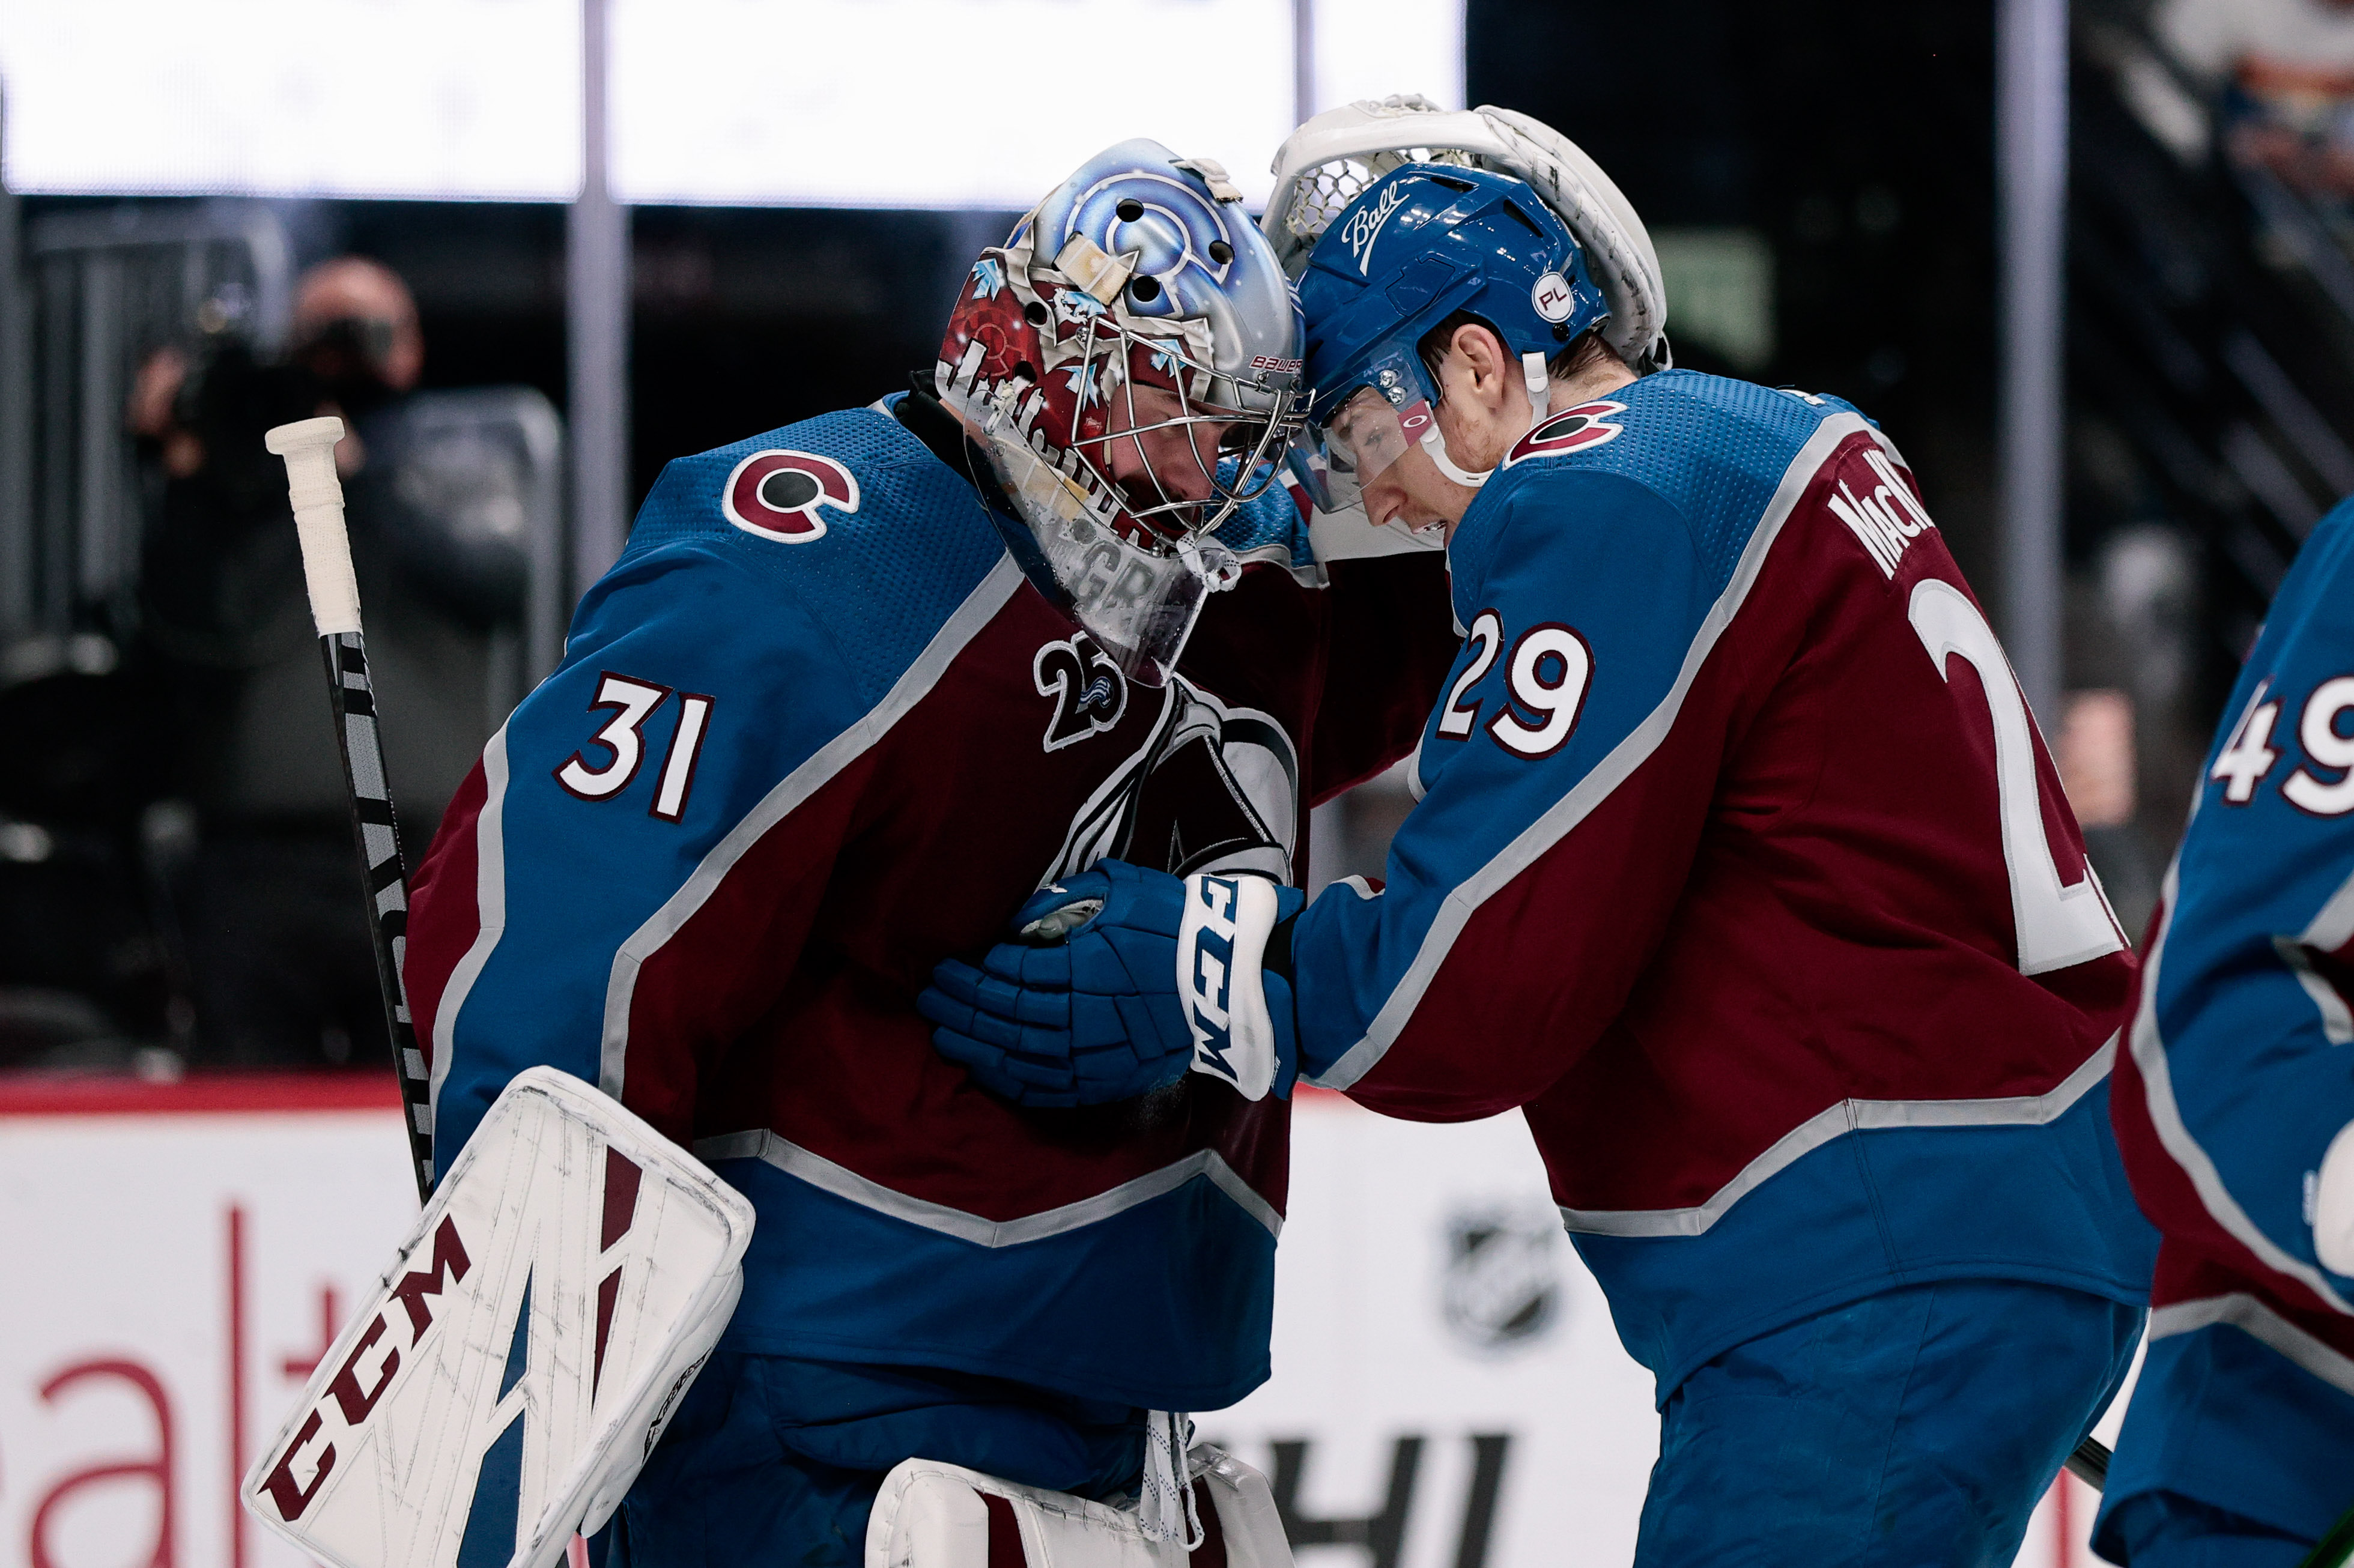 Colorado Avalanche goaltender Philipp Grubauer celebrates with center Nathan MacKinnon after winning game two of the first round of the 2021 Stanley Cup Playoffs against the St. Louis Blues at Ball Arena.